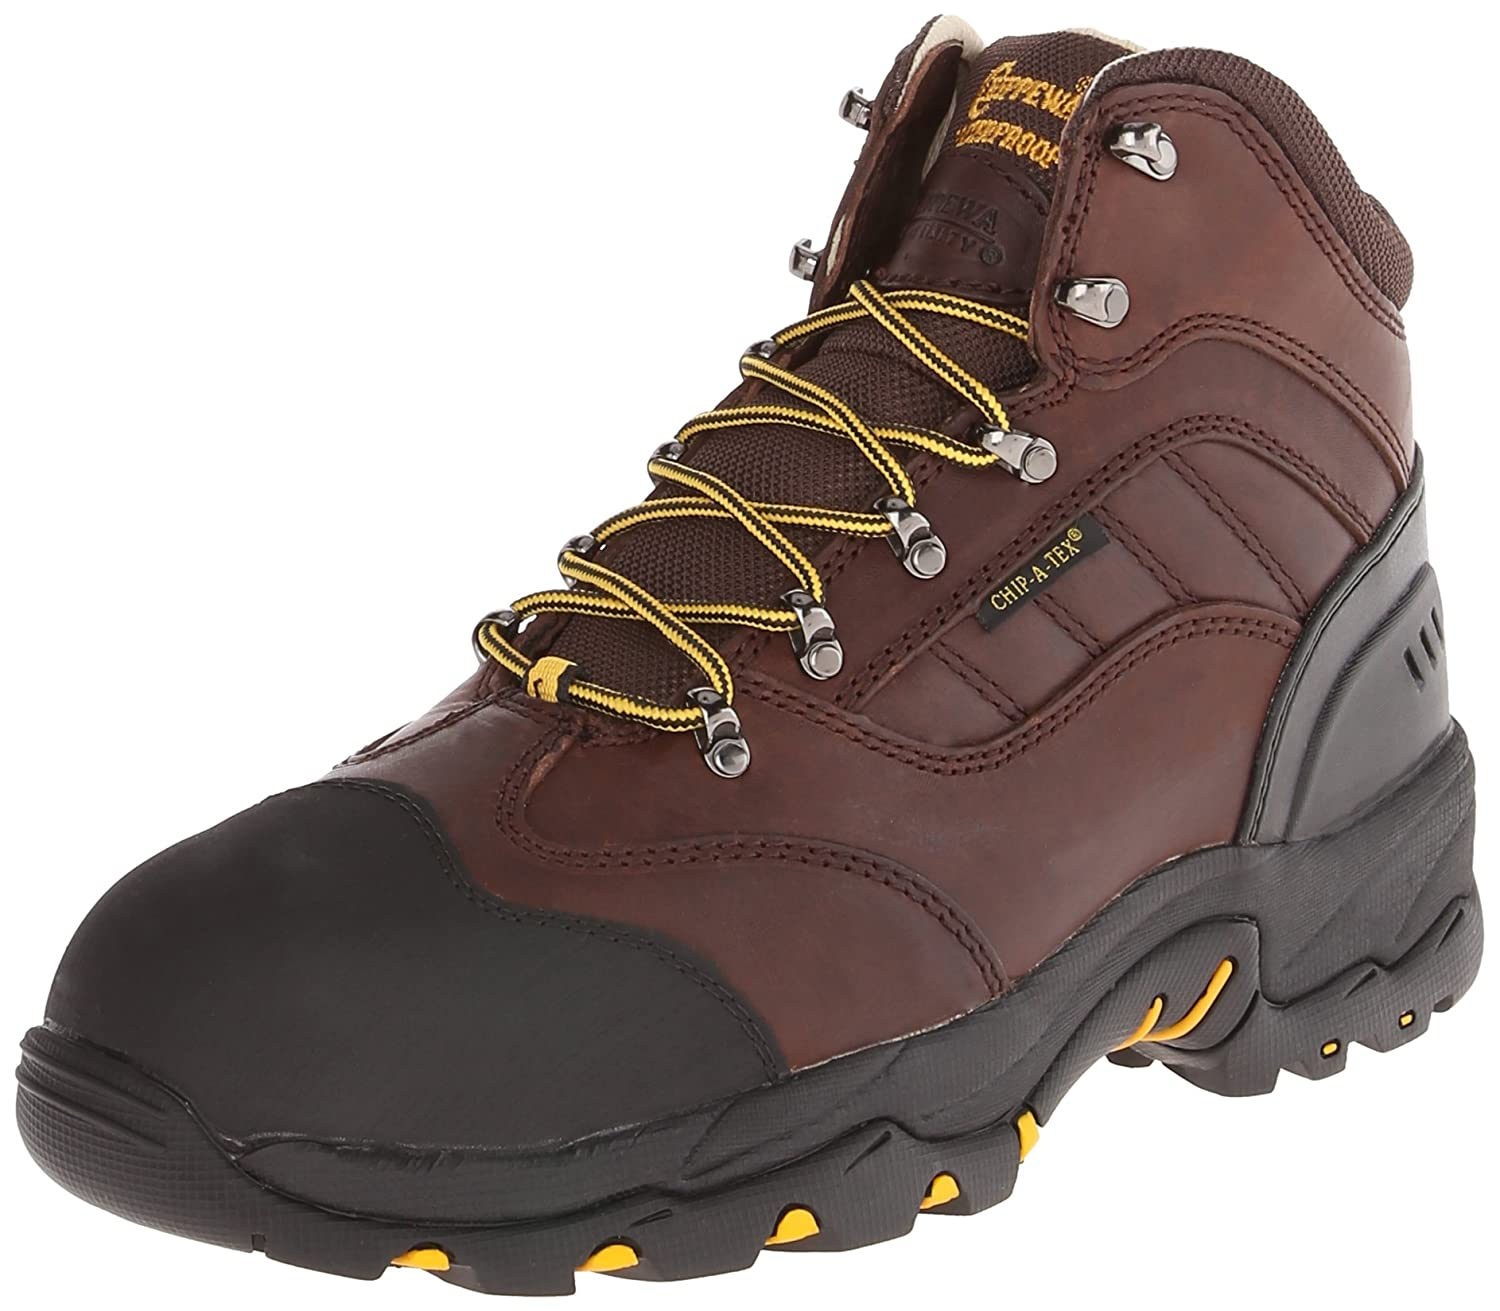 Men's 6 Inch Chocolate Oiled Waterproof Comp Toe Lace-Up Hiking Boot